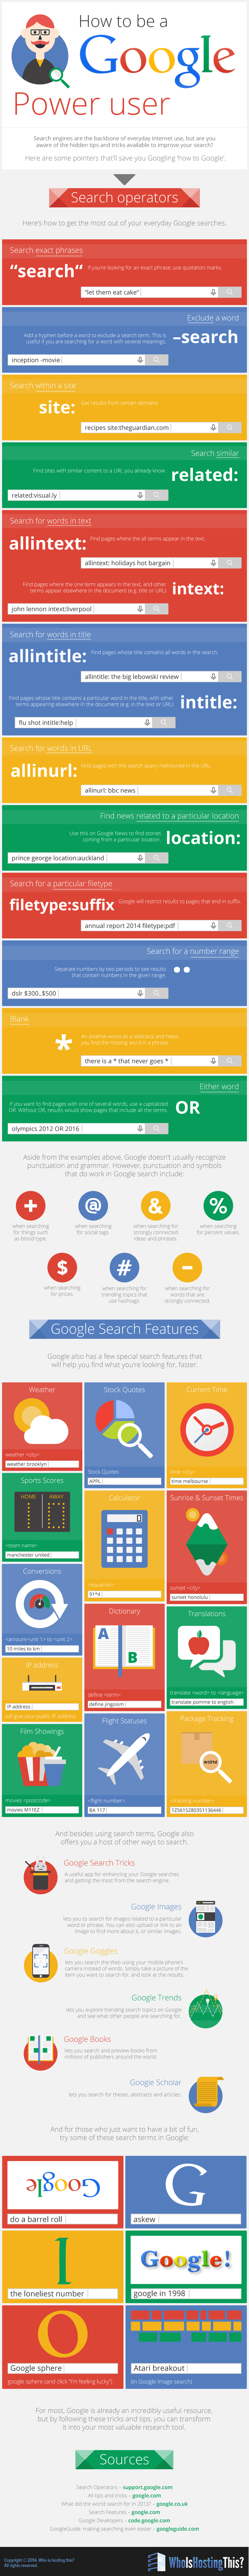 How to be a Google Power User